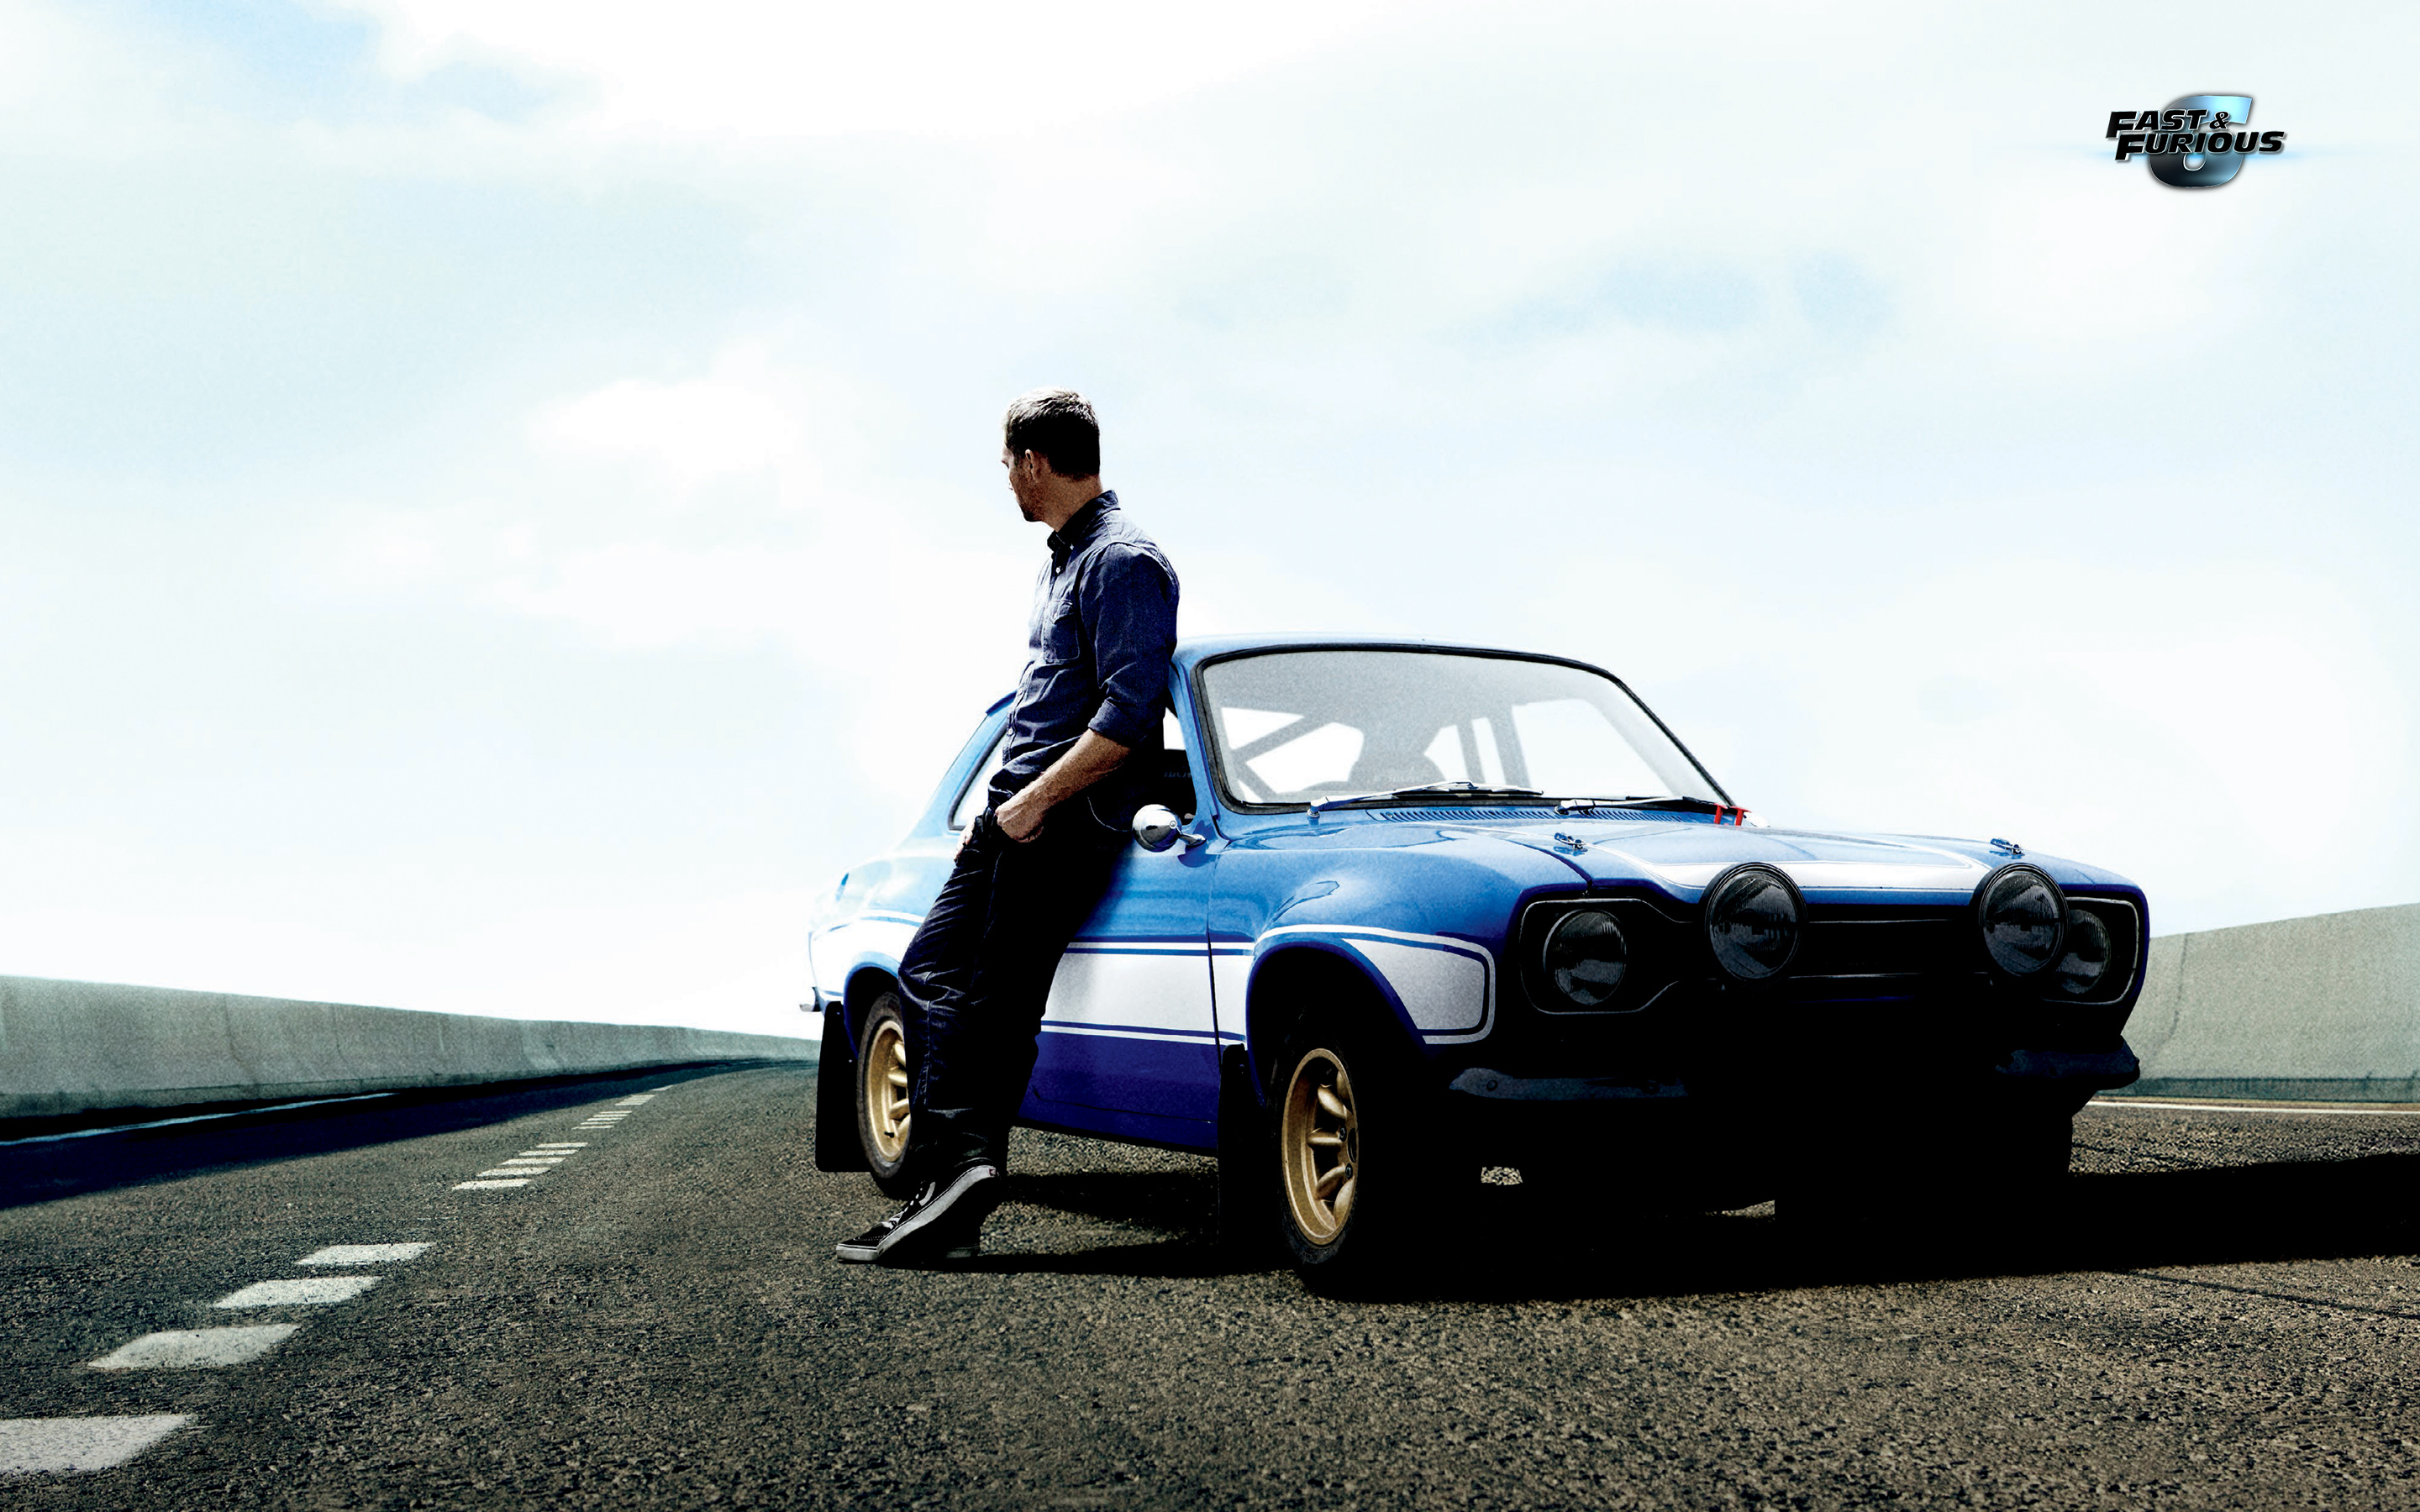 Paul Walker, the Fast and Furious | Paolo&Marti's adventures